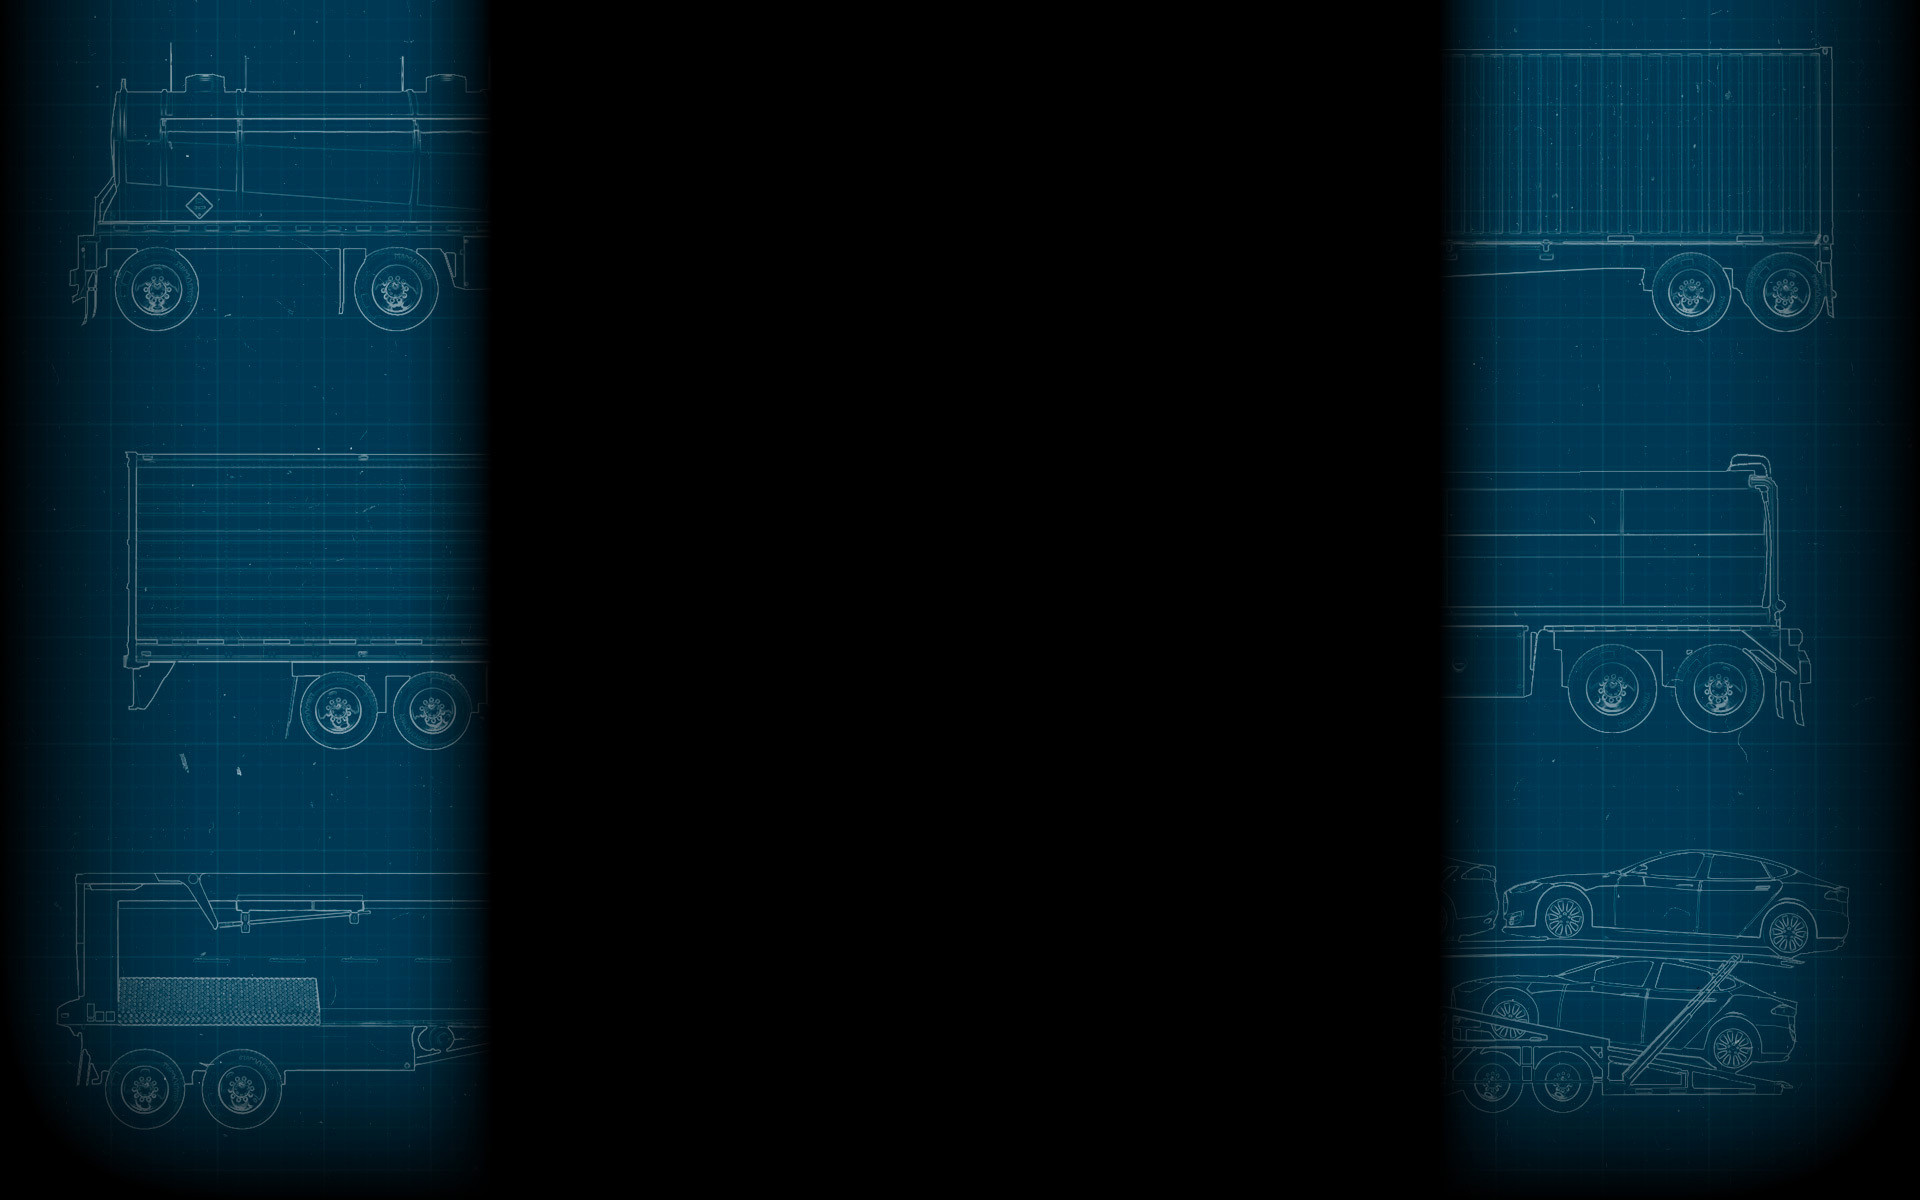 Blue print background 46 images 1920x1200 elementary blueprint 1920x1200 wallpaper by dikoo elementary blueprint 1920x1200 wallpaper by dikoo malvernweather Images